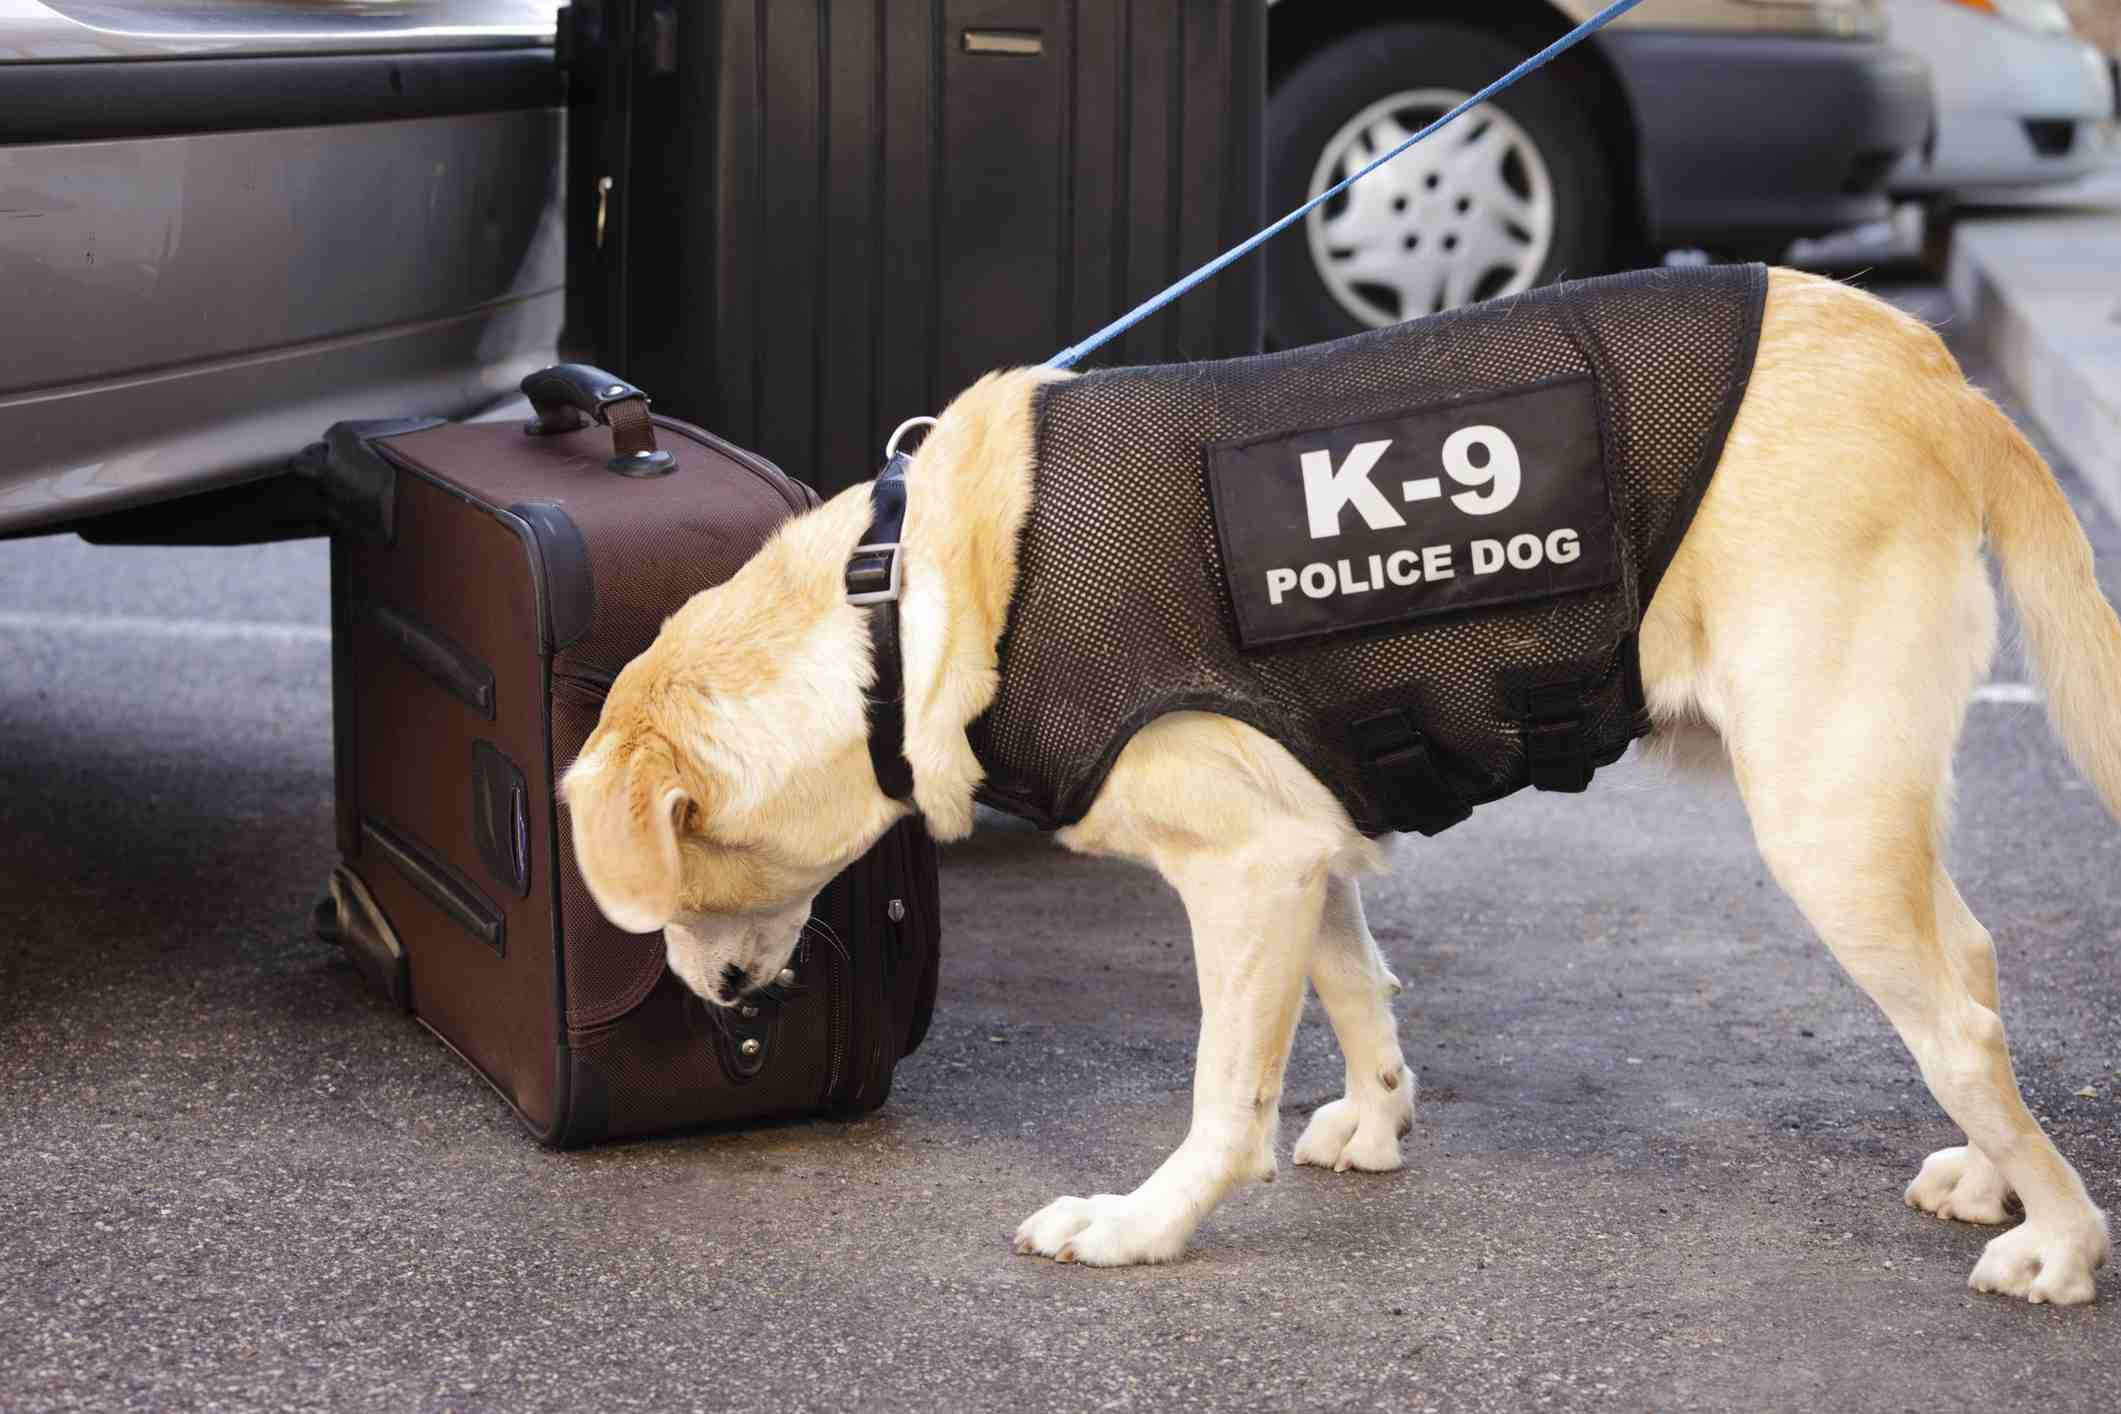 Police dog sniffing suitcase